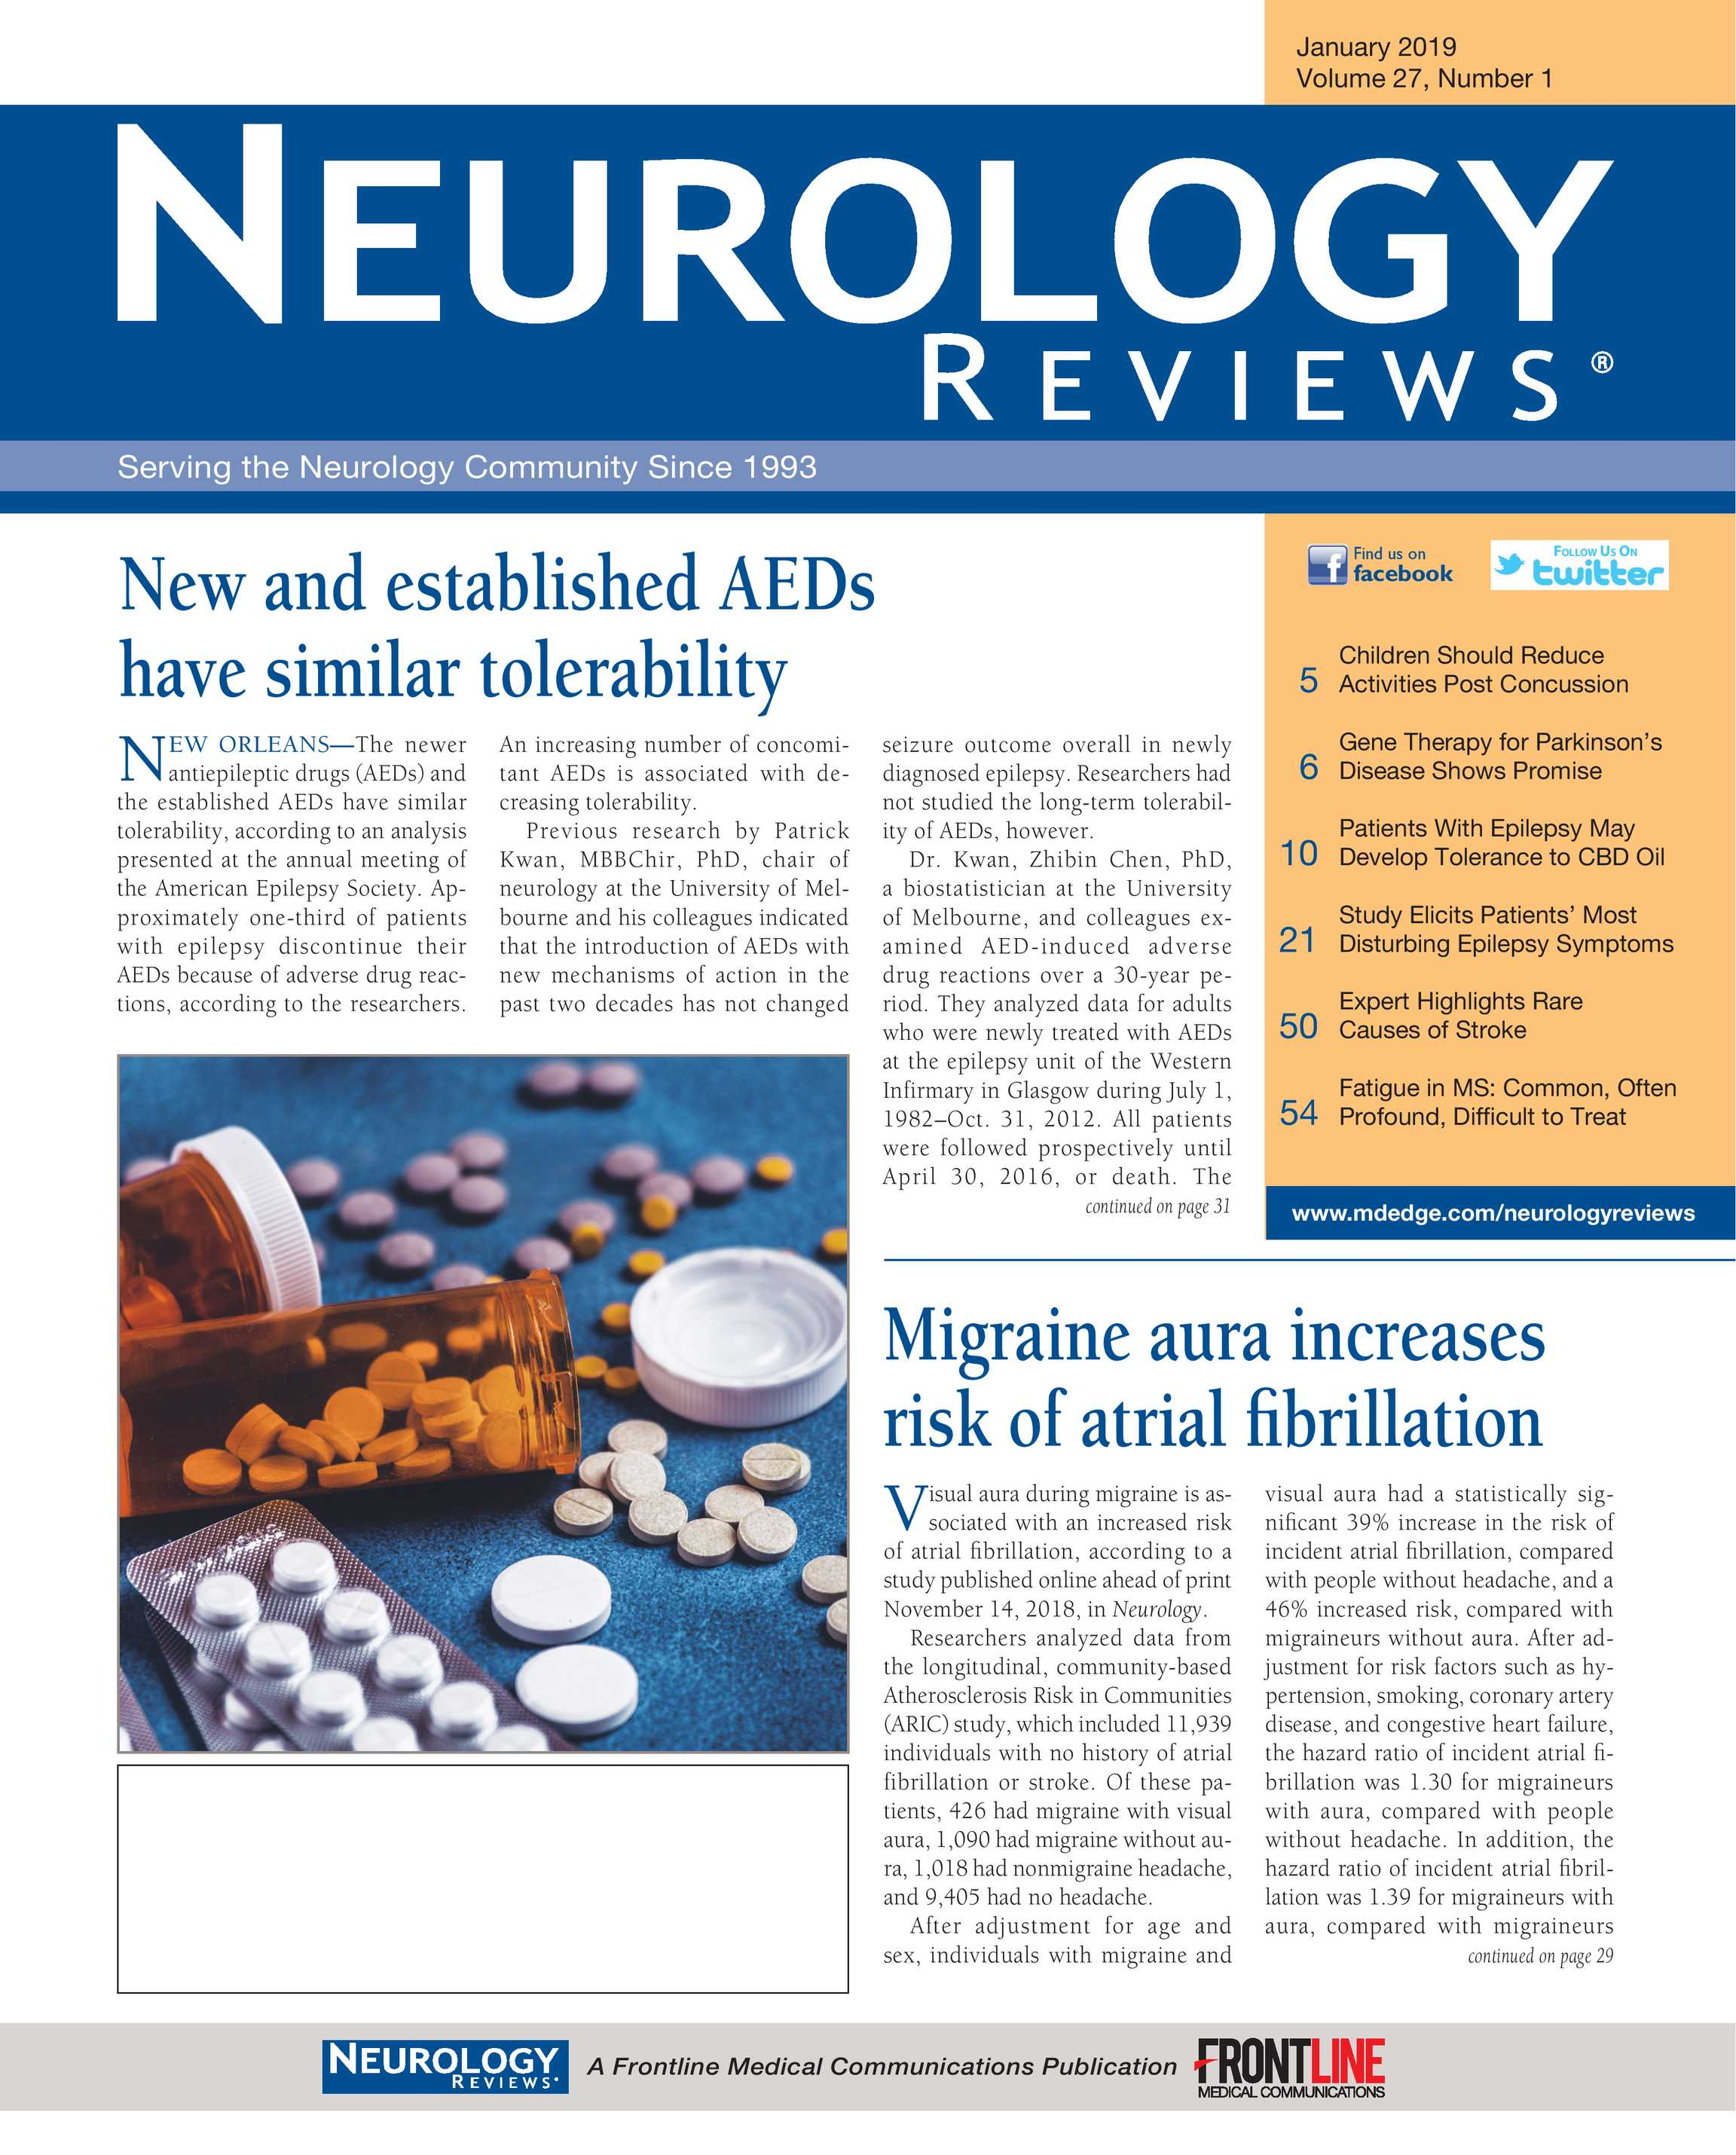 Neurology Reviews - NR JAN 2019 - page 1